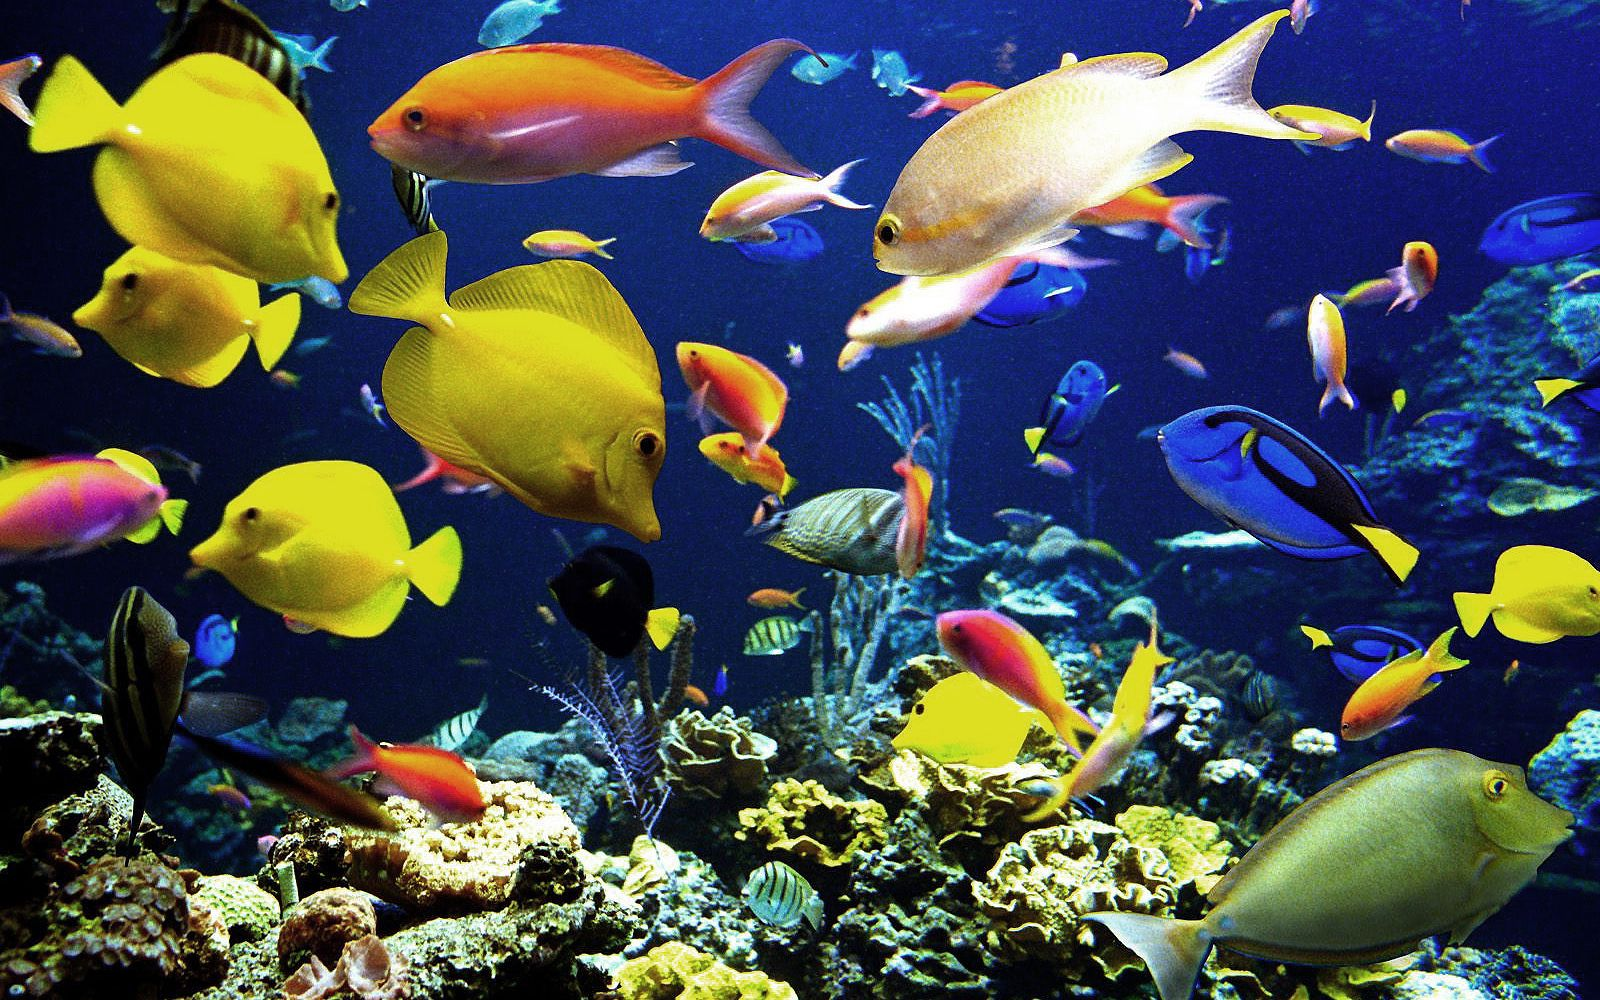 Hd vissen wallpaper met tropische vissen onder water for Wallpaper fish in water